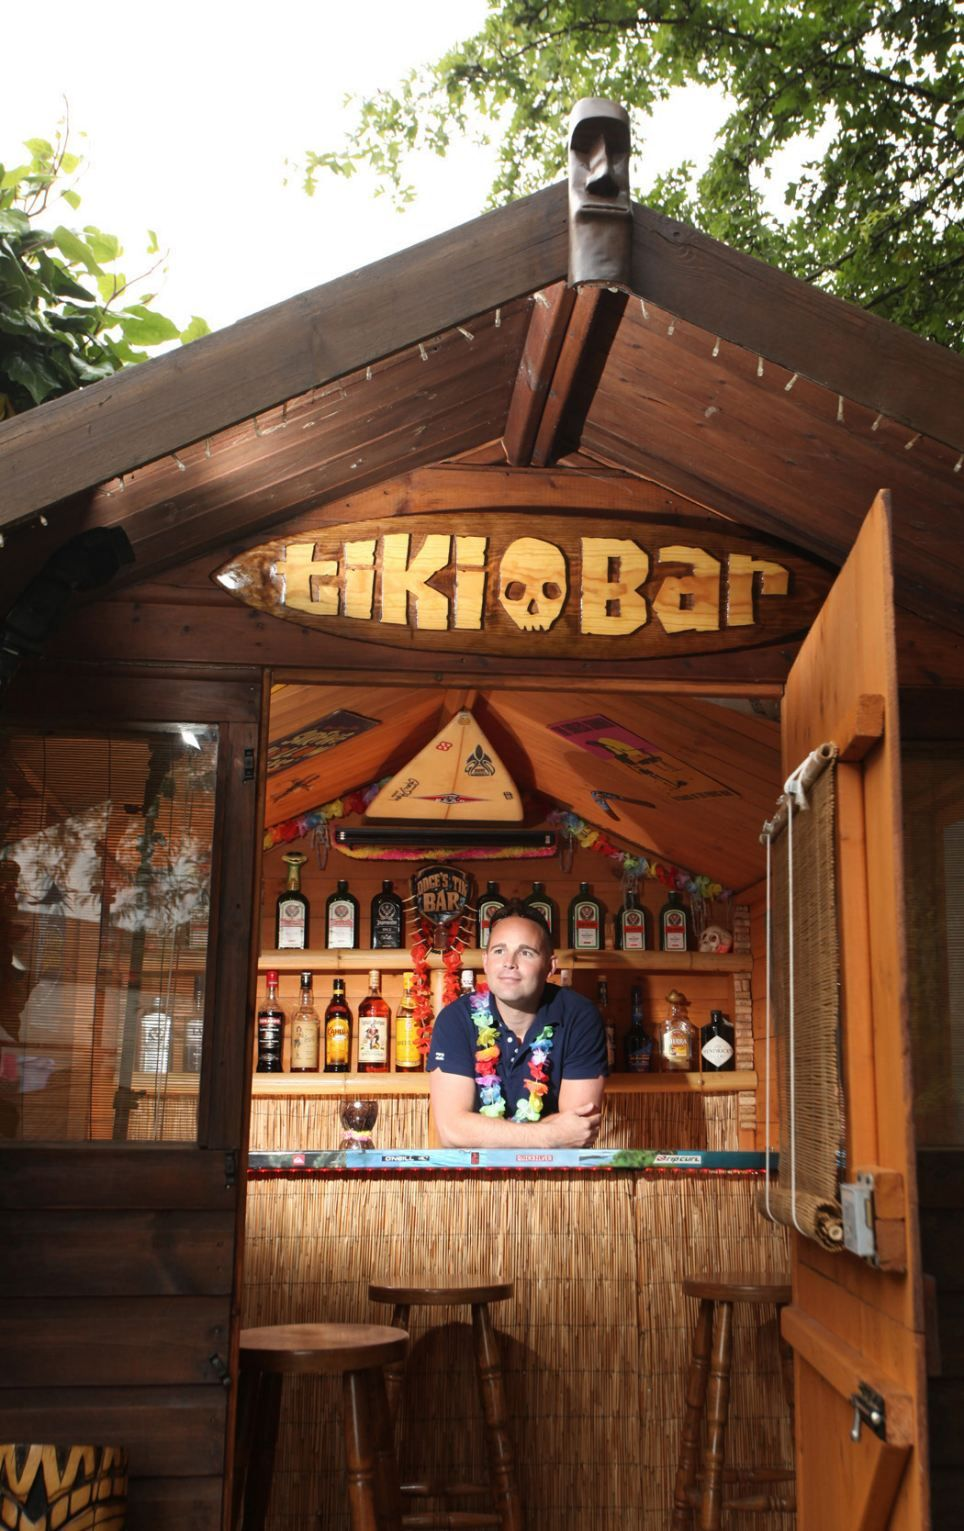 Shed of the year competition features dad 39 s army museum for Garden shed pub